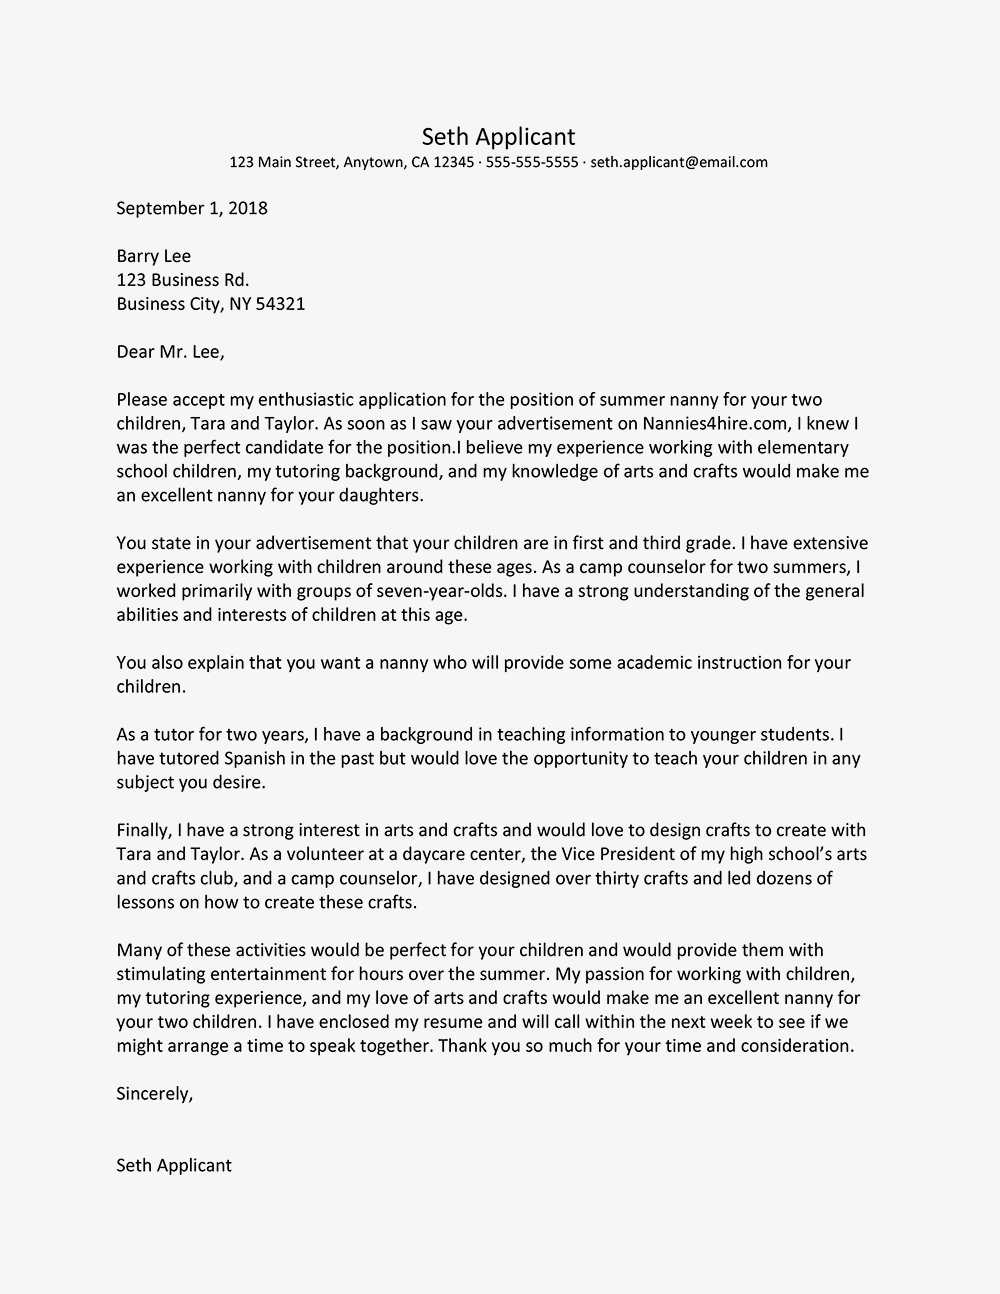 Nanny Resume and Cover Letter Examples